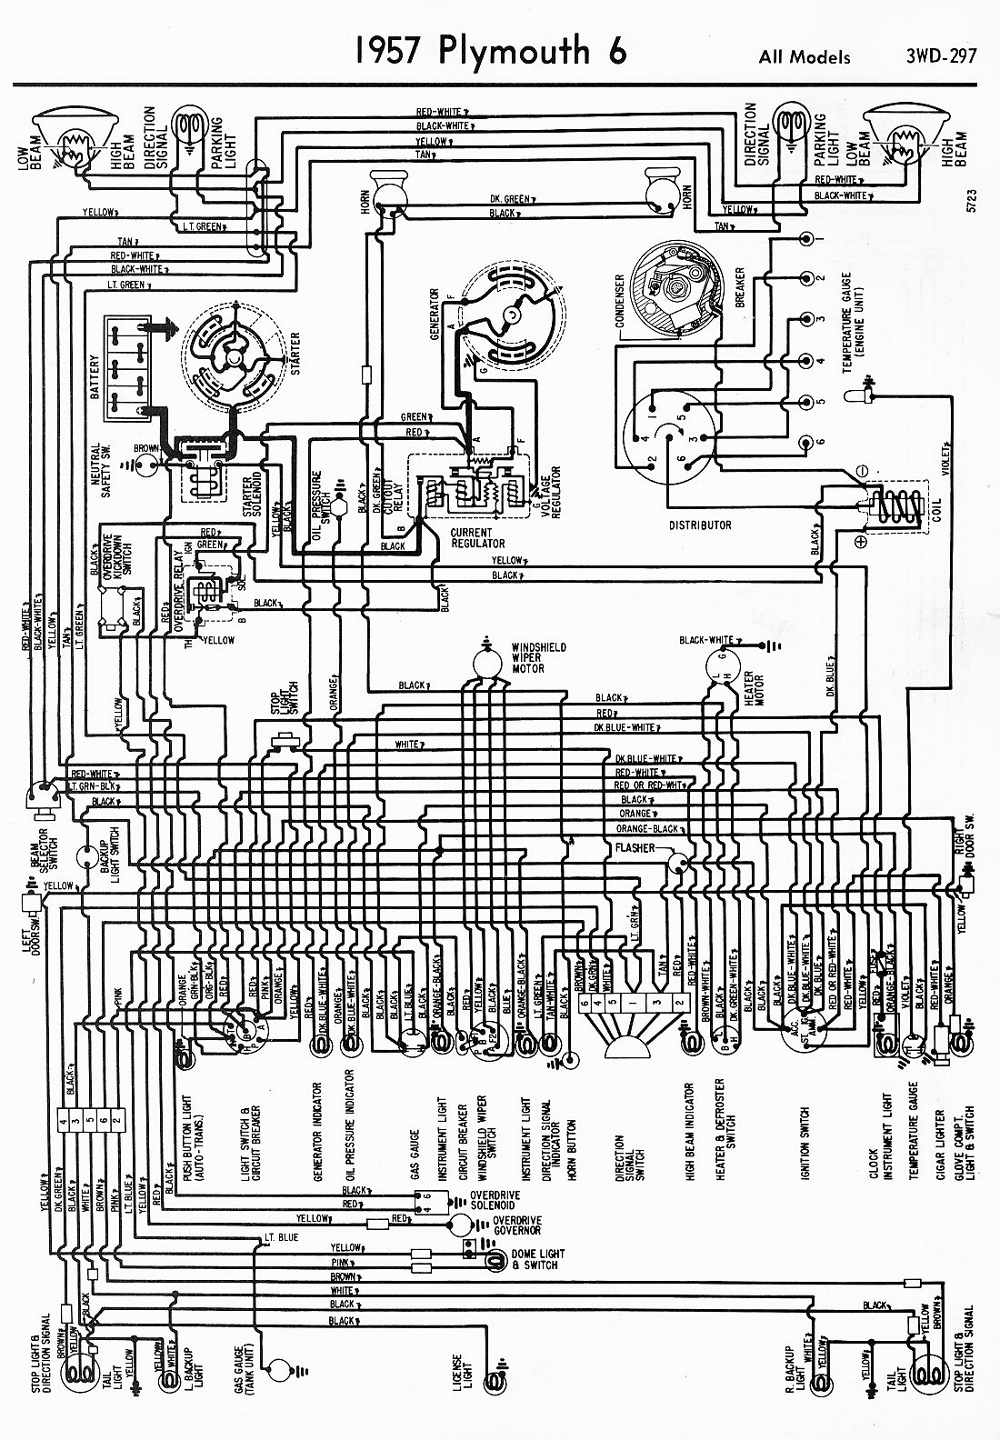 1968 Plymouth Wiring Diagram Gtx Diagrams Blog About Rh Clares Driving Co Uk 1972 Fury 3